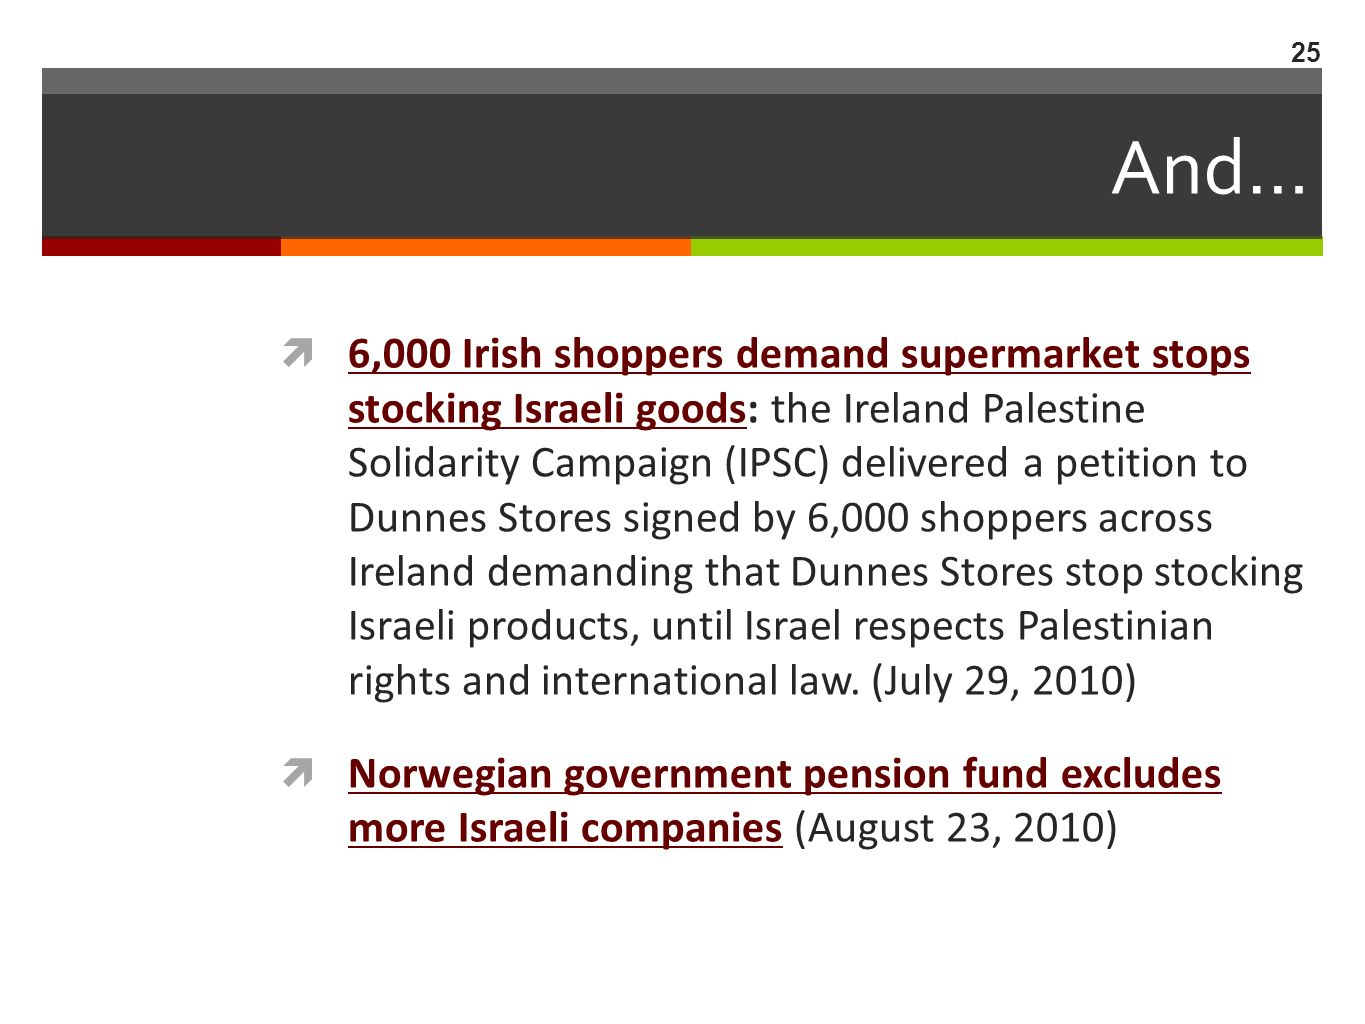 And… 6,000 Irish shoppers demand supermarket stops stocking Israeli goods: the Ireland Palestine Solidarity Campaign (IPSC) delivered a petition to Dunnes Stores signed by 6,000 shoppers across Ireland demanding that Dunnes Stores stop stocking Israeli products, until Israel respects Palestinian rights and international law.